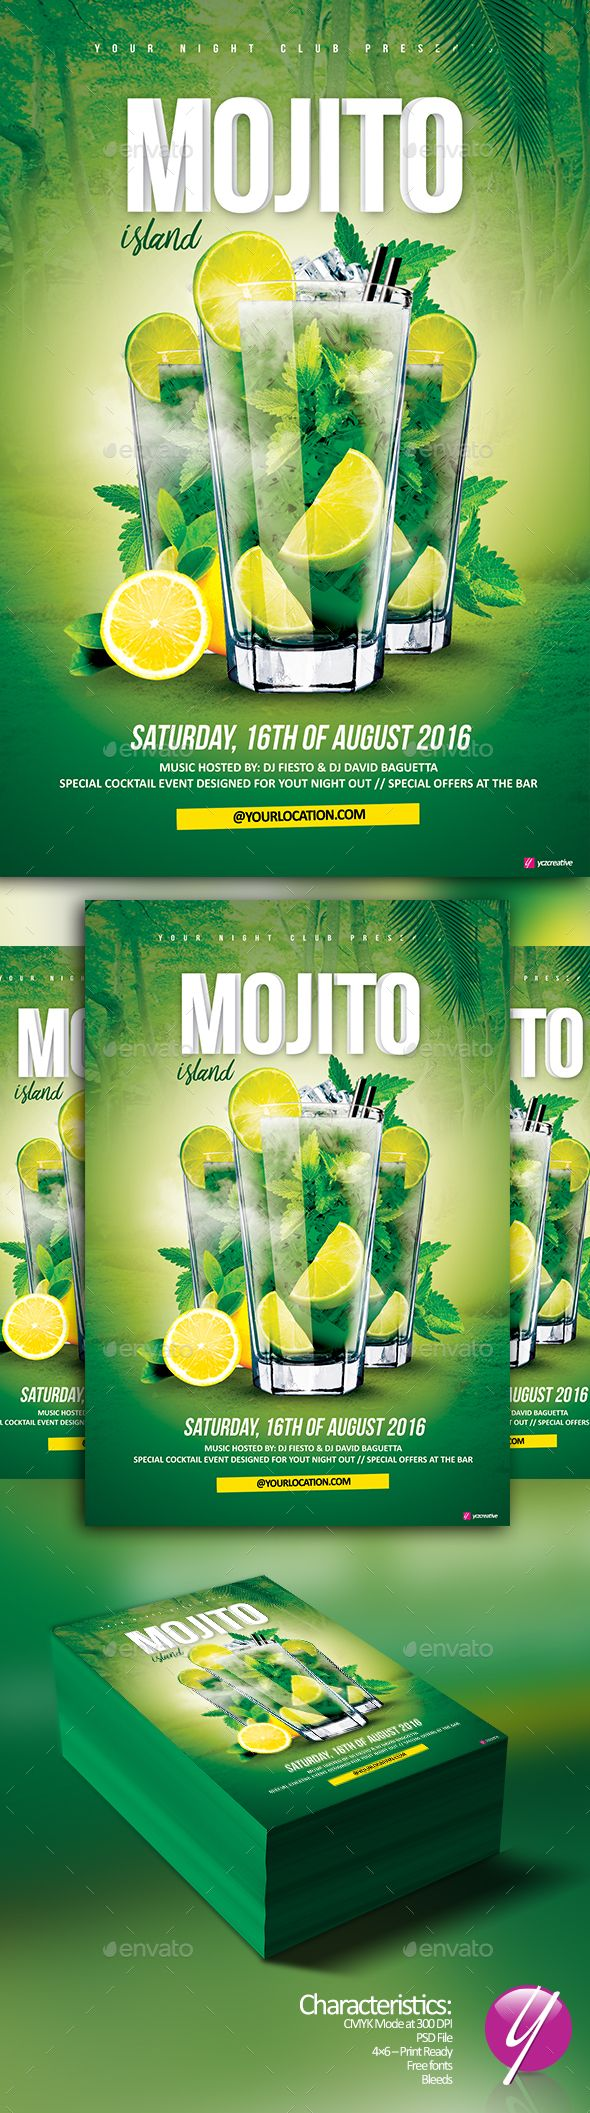 Mojito Island Cocktail Flyer Template PSD. Download here: http://graphicriver.net/item/mojito-island-cocktail/16461579?ref=ksioks